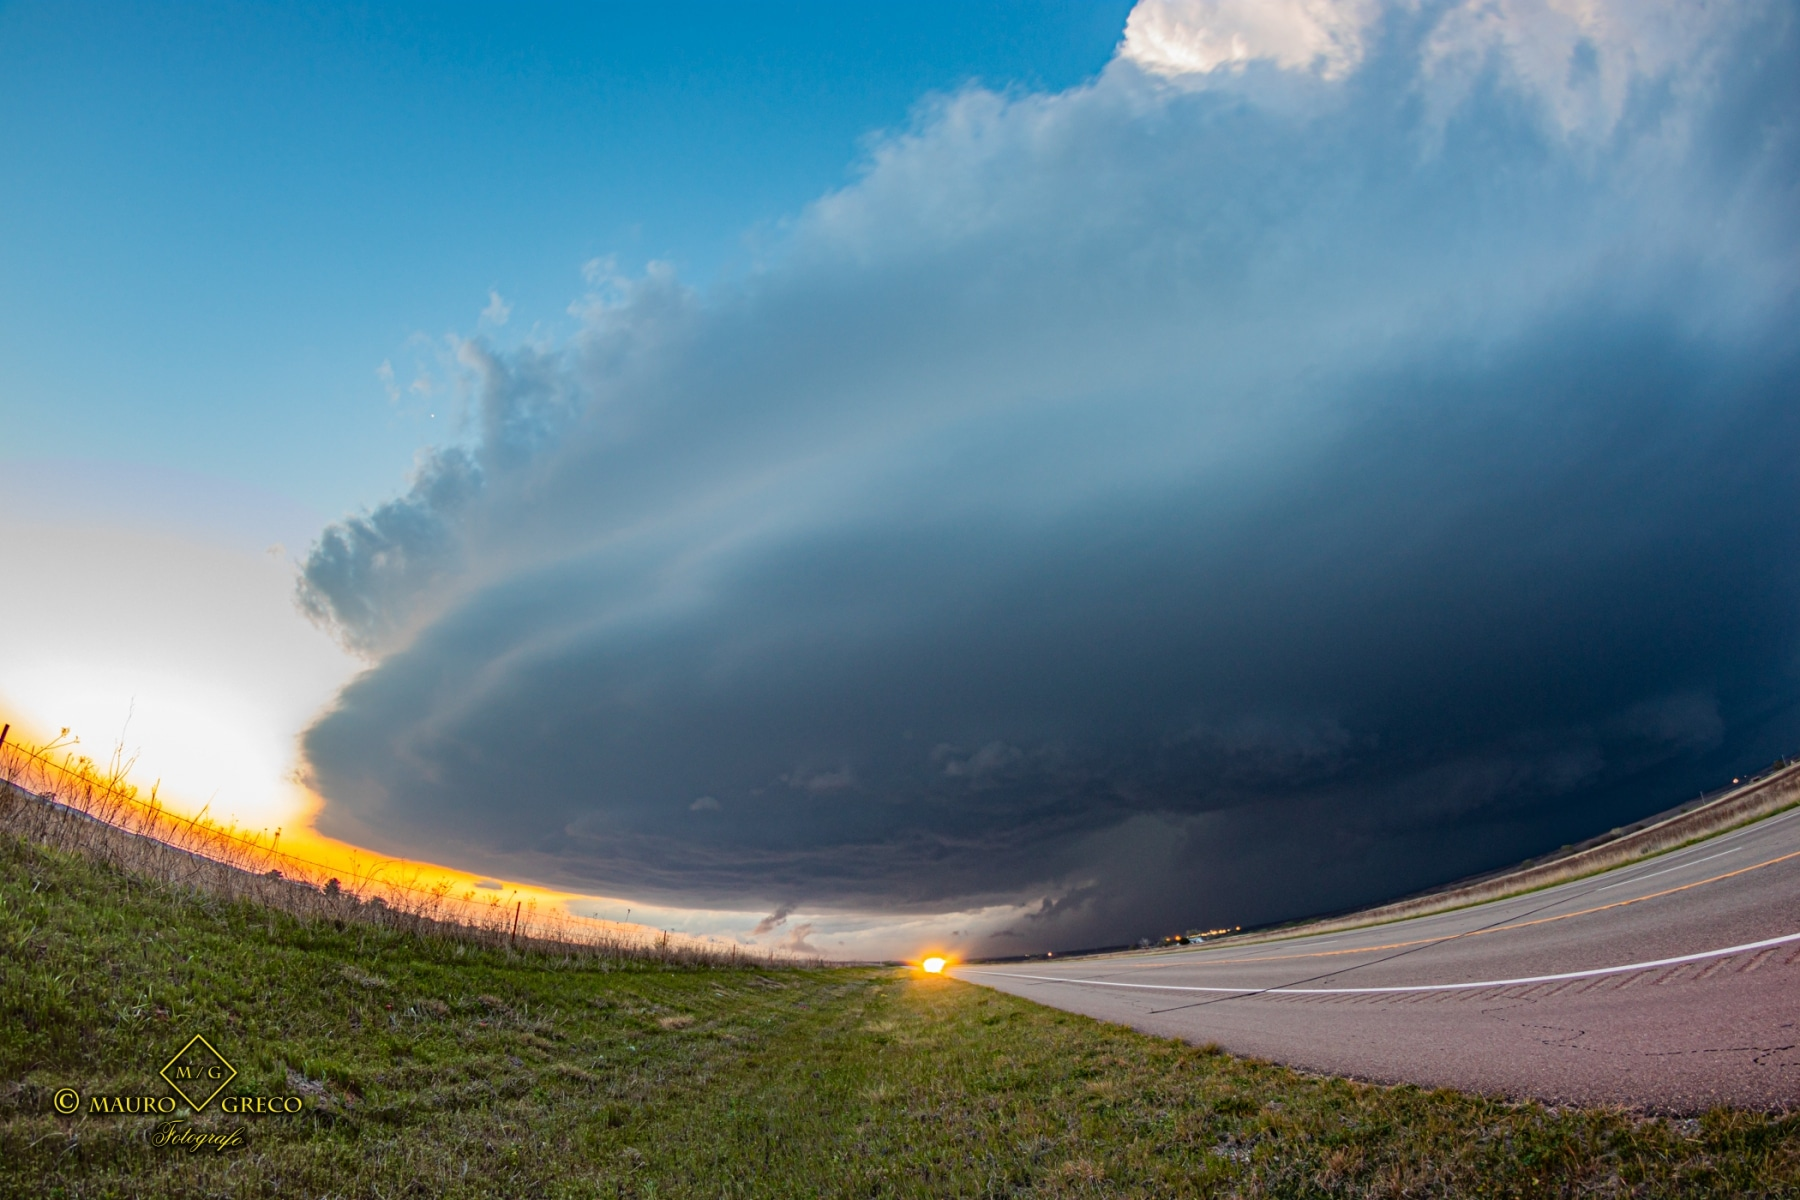 April 21 2020 Tornado warned severe thunderstorm supercell south of Canadian Texas - Tornado Tour StormWind